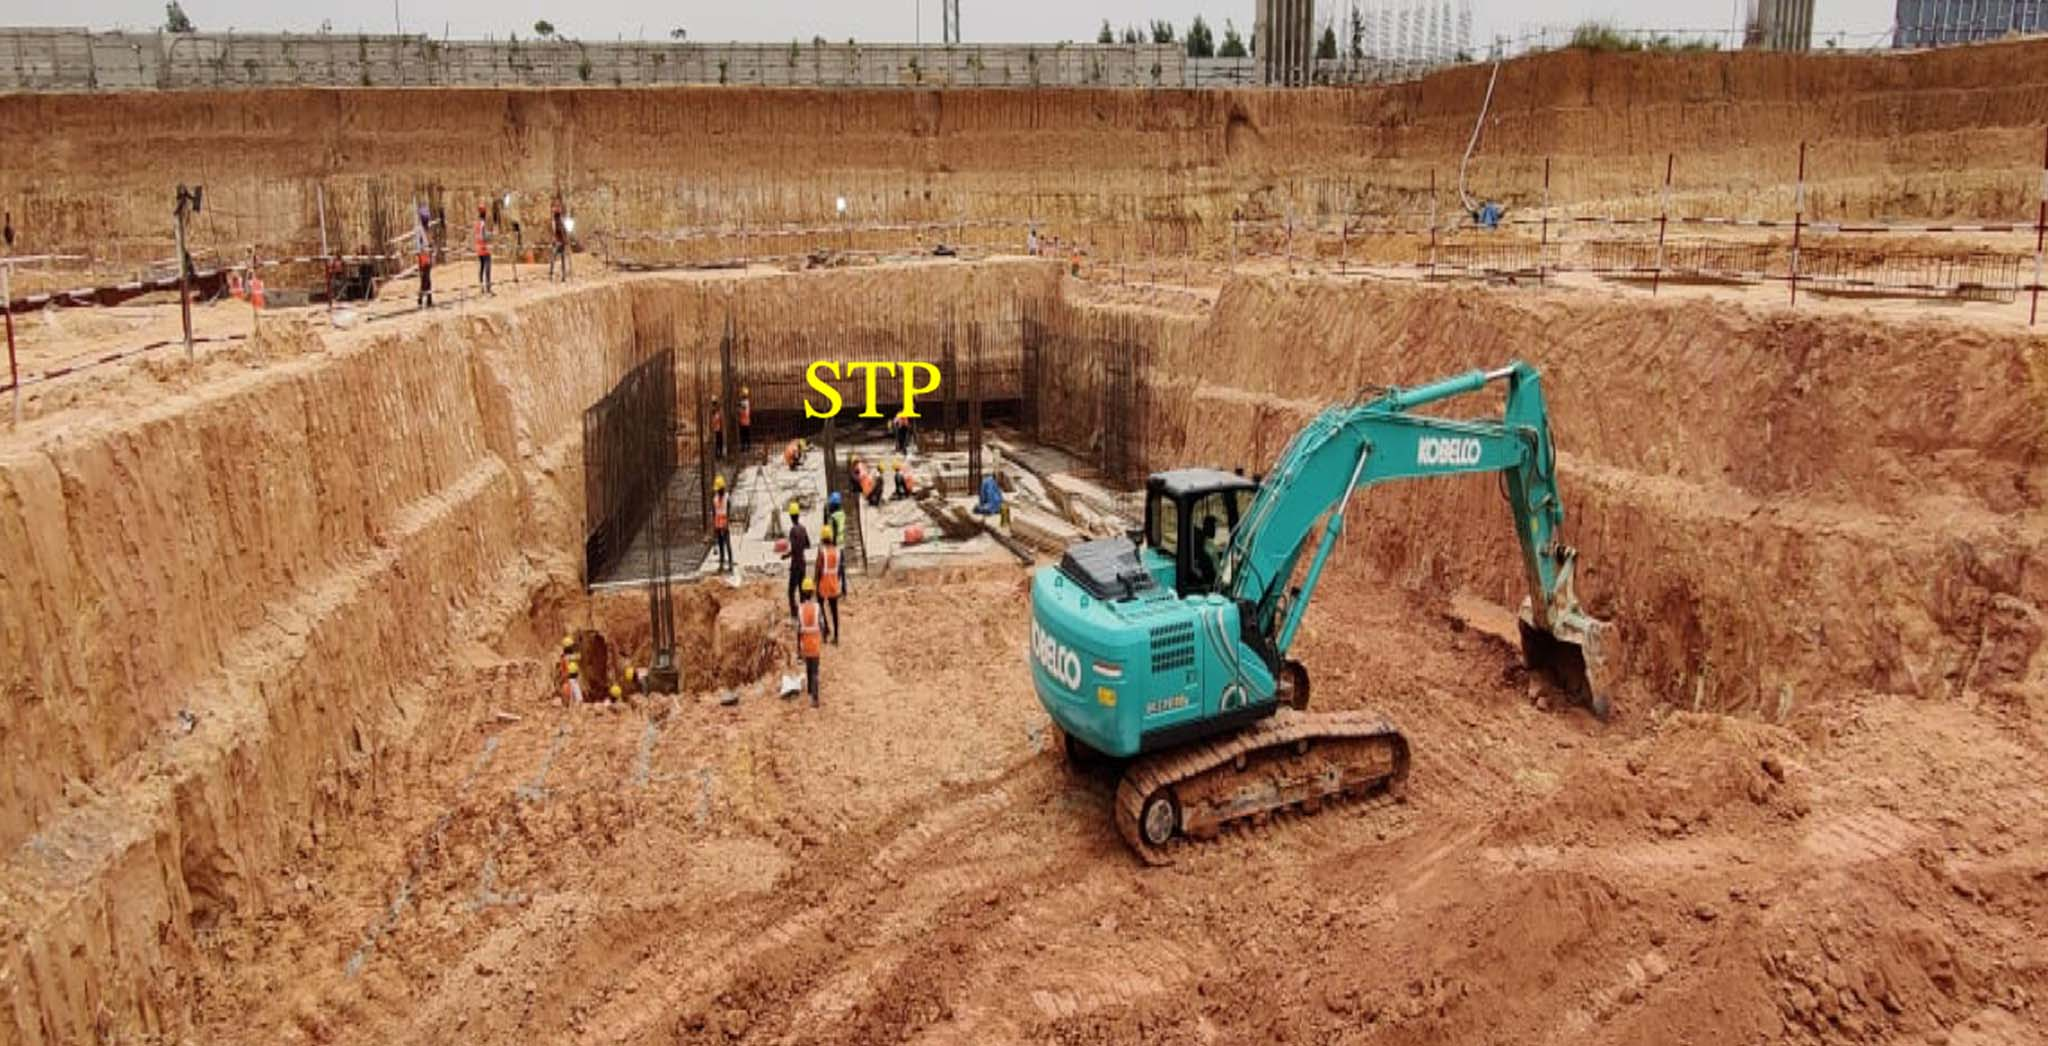 STP foundation excavation work-in-progress - Status Images 0